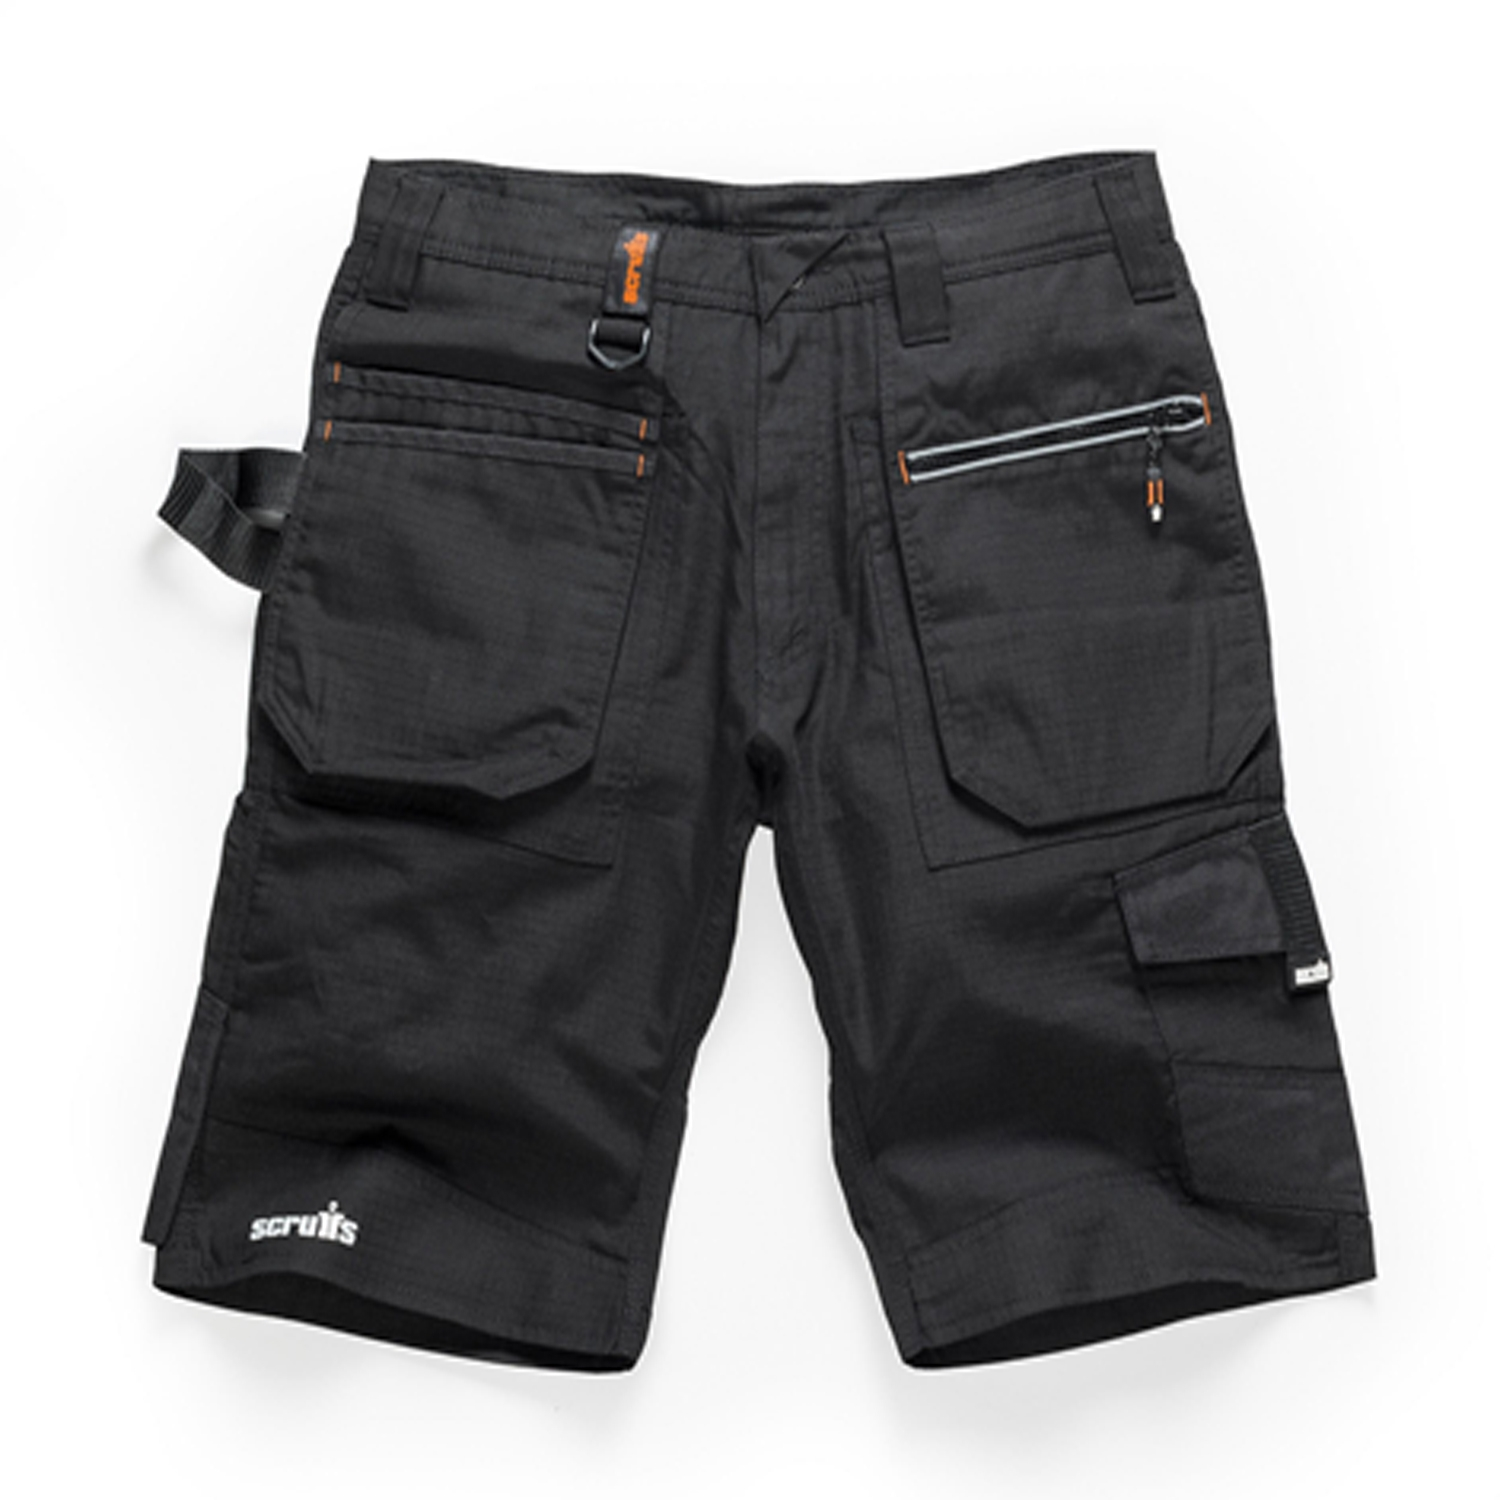 Scruffs Ripstop Trade Cargo Work Shorts with Multiple Pockets Black Men's Combat